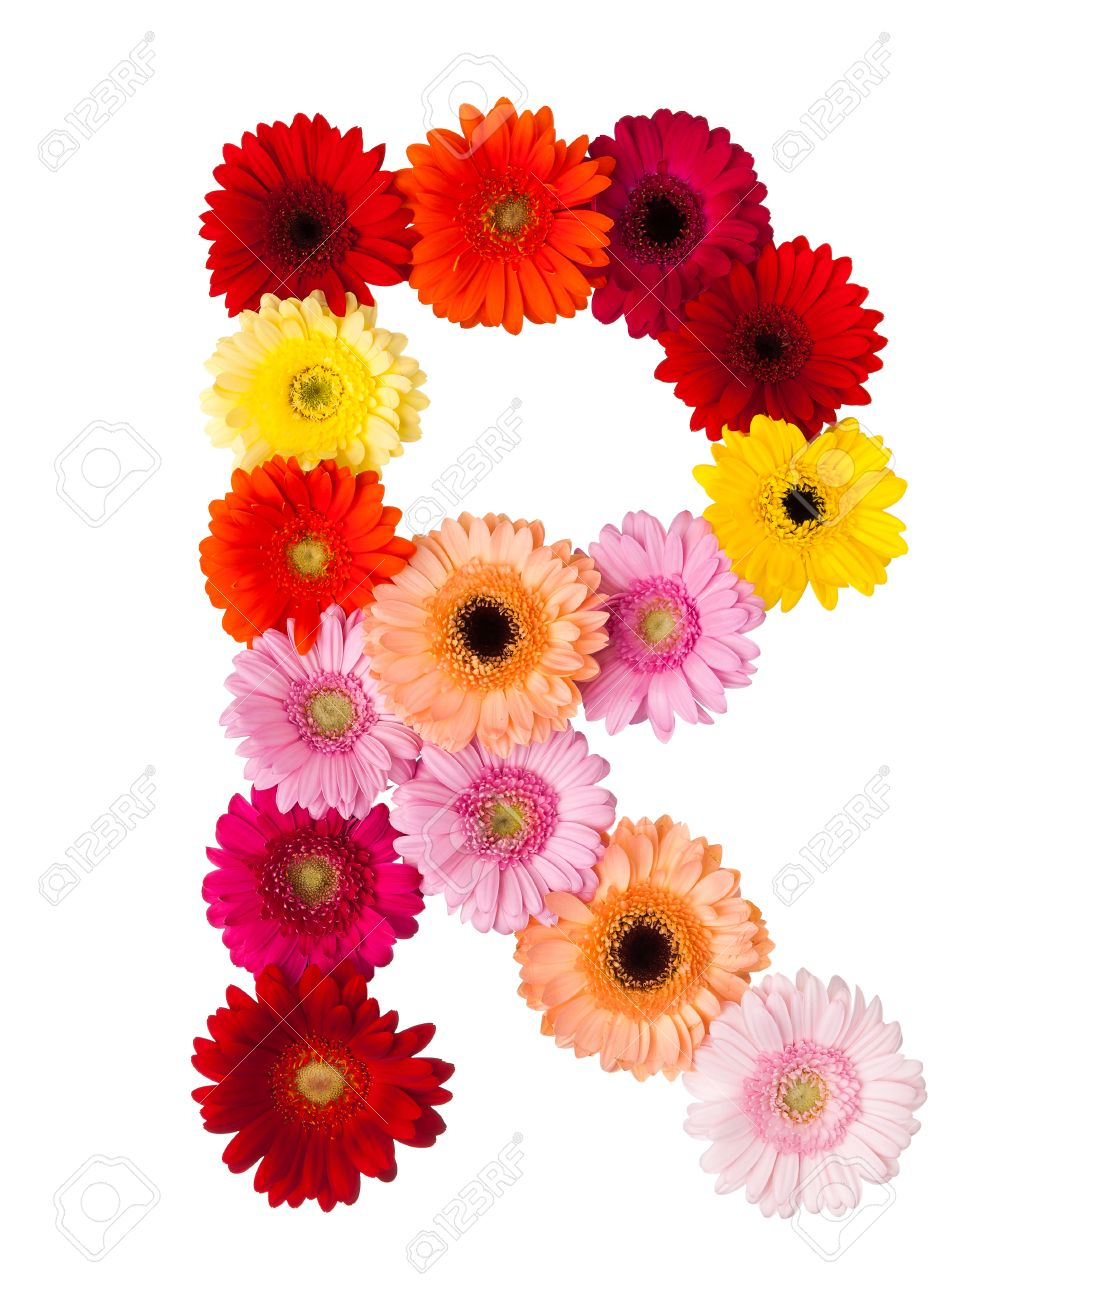 Flower letter r on white background made of gerbera flowers stock flower letter r on white background made of gerbera flowers stock photo 28601274 altavistaventures Choice Image